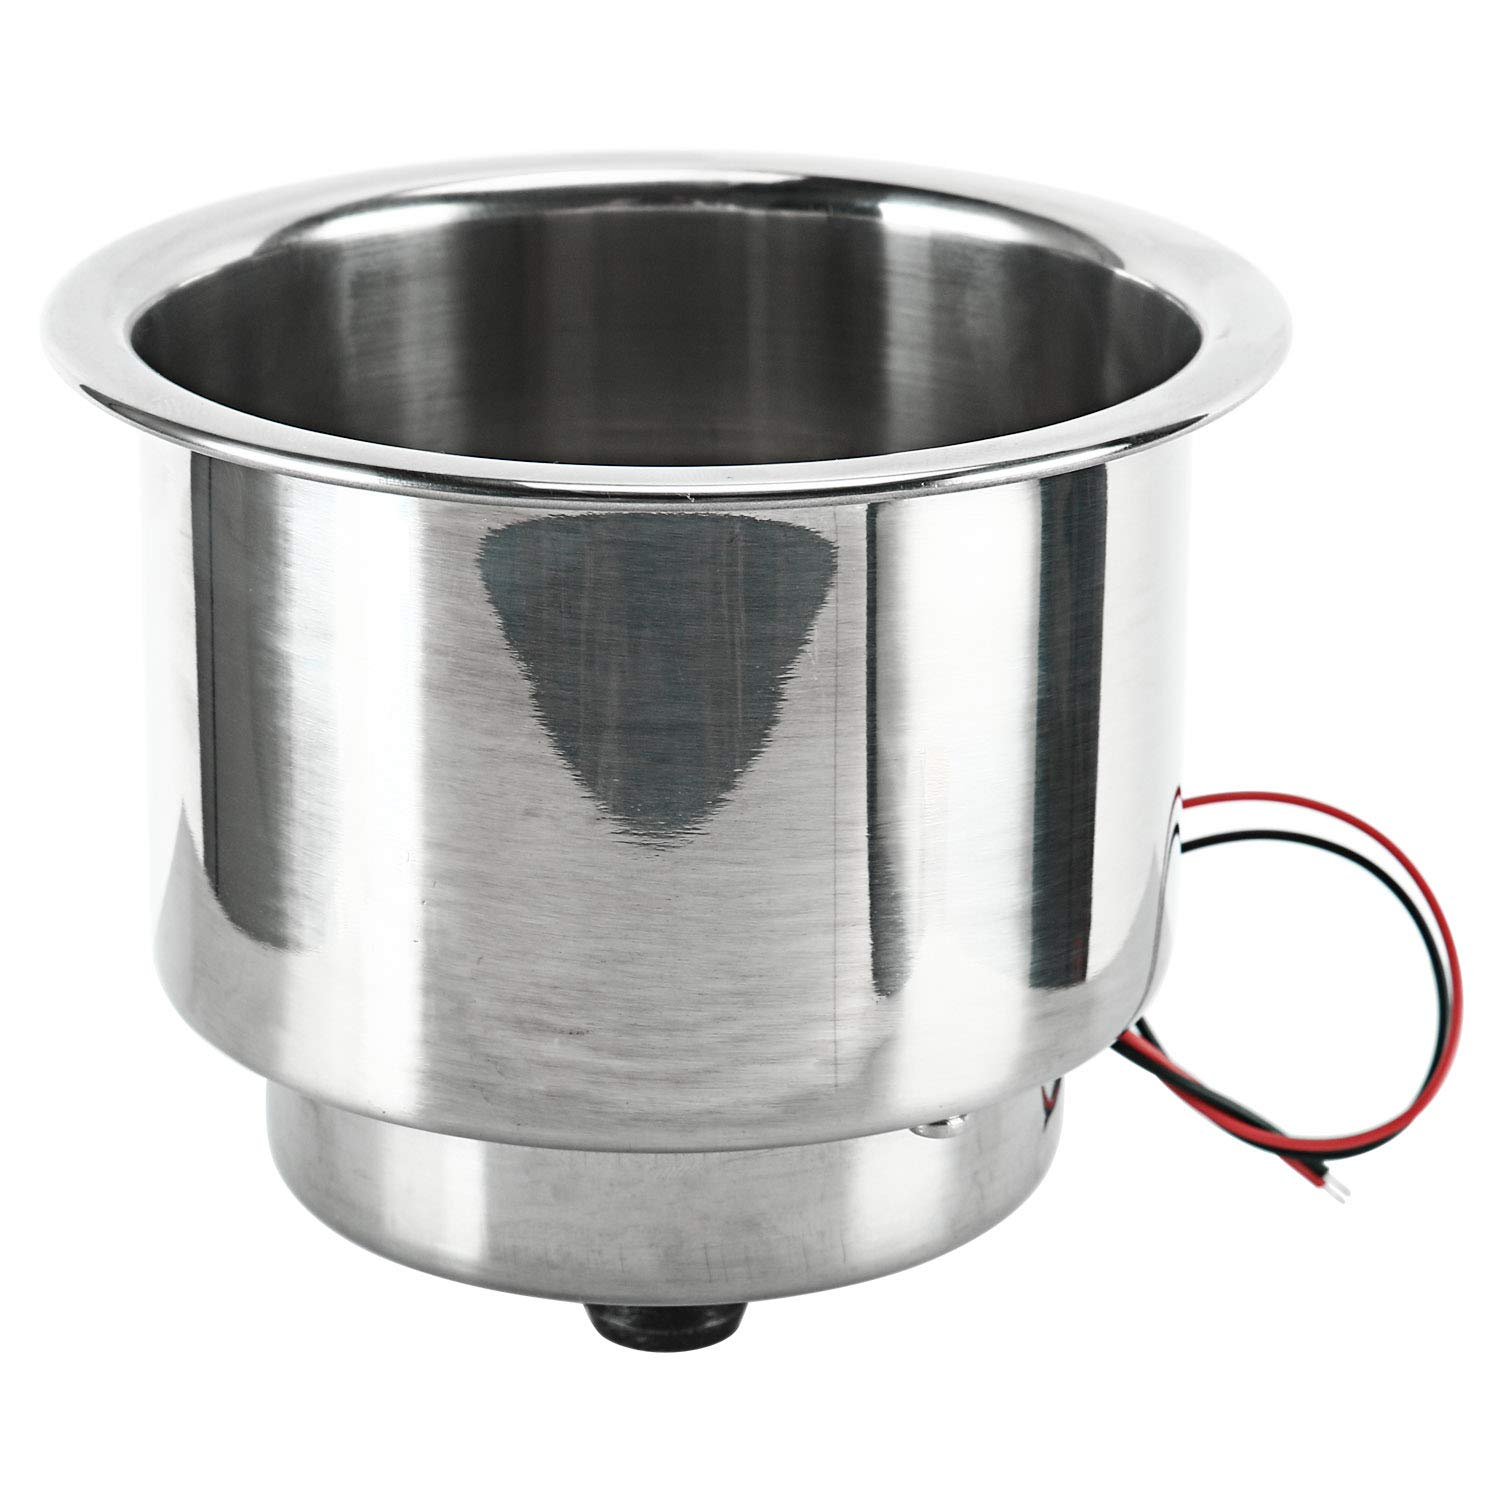 Amarine-made 2 Pieces of 3 Red LED Stainless Steel Cup Drink Holder with Drain Marine Boat Rv Camper Alfa Marine Co shanghai Ltd